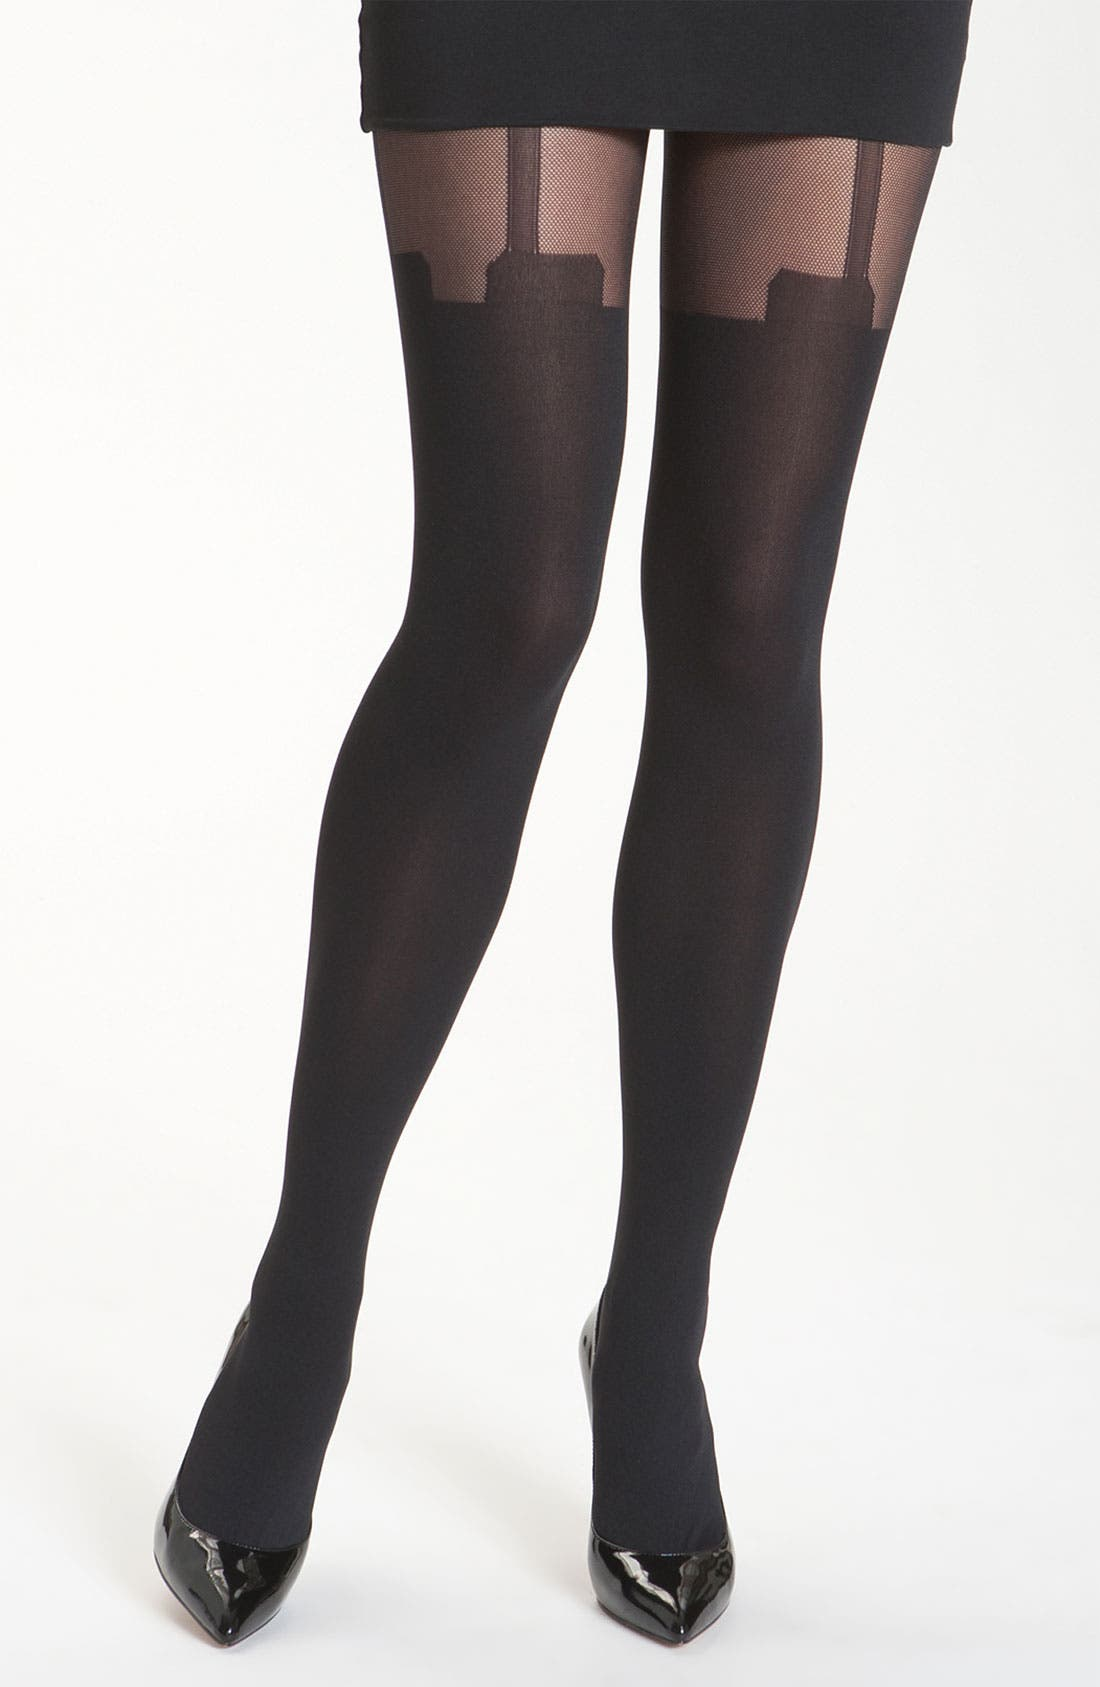 Main Image - Pretty Polly 'House of Holland Mesh Super Suspender' Tights